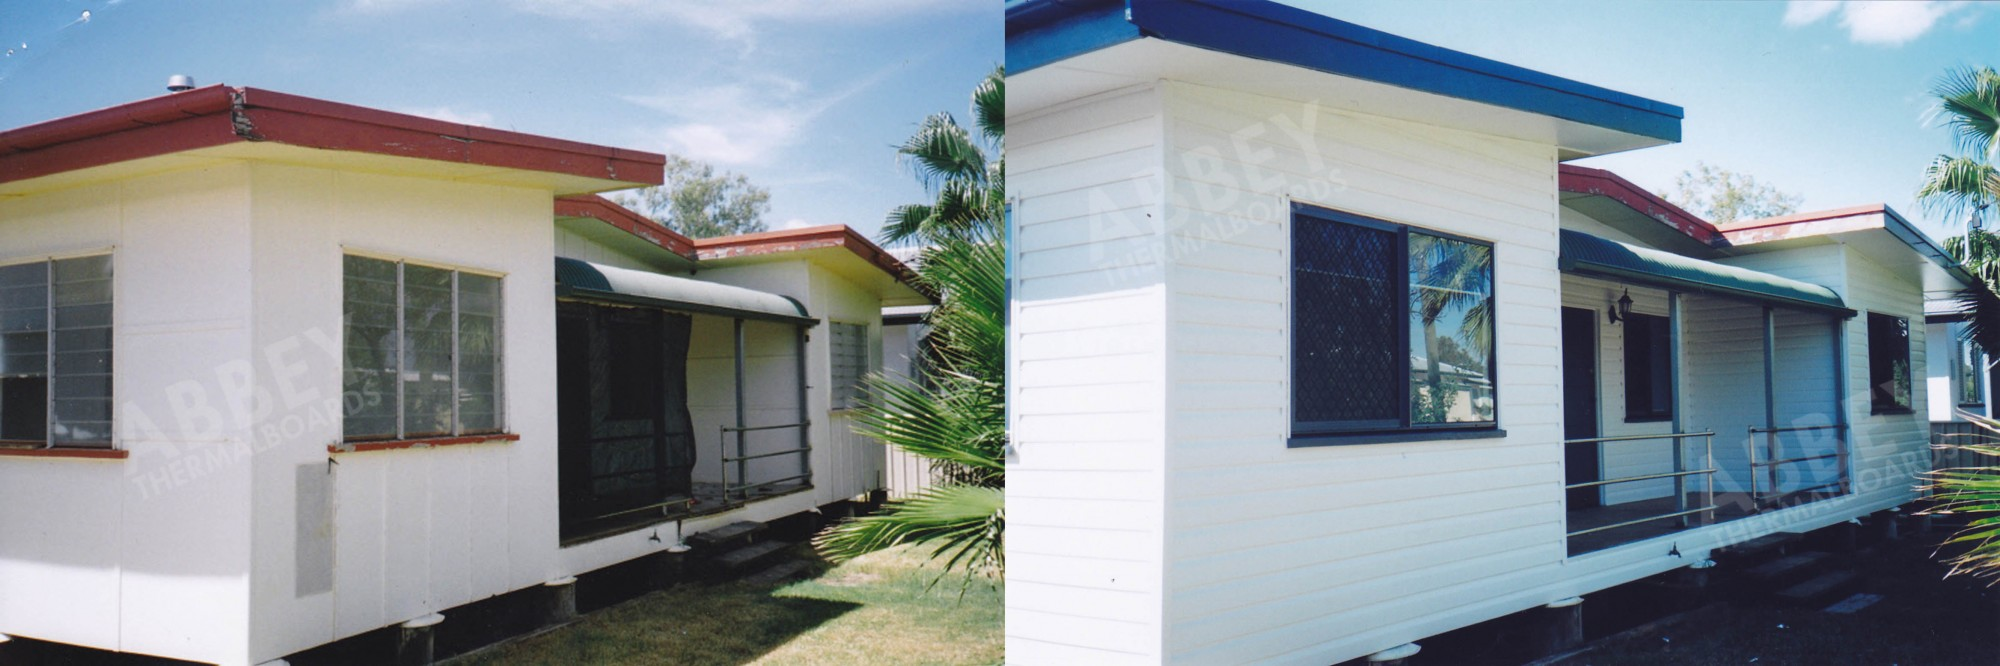 Front before and after picture of a house verandah that Abbey cladded.